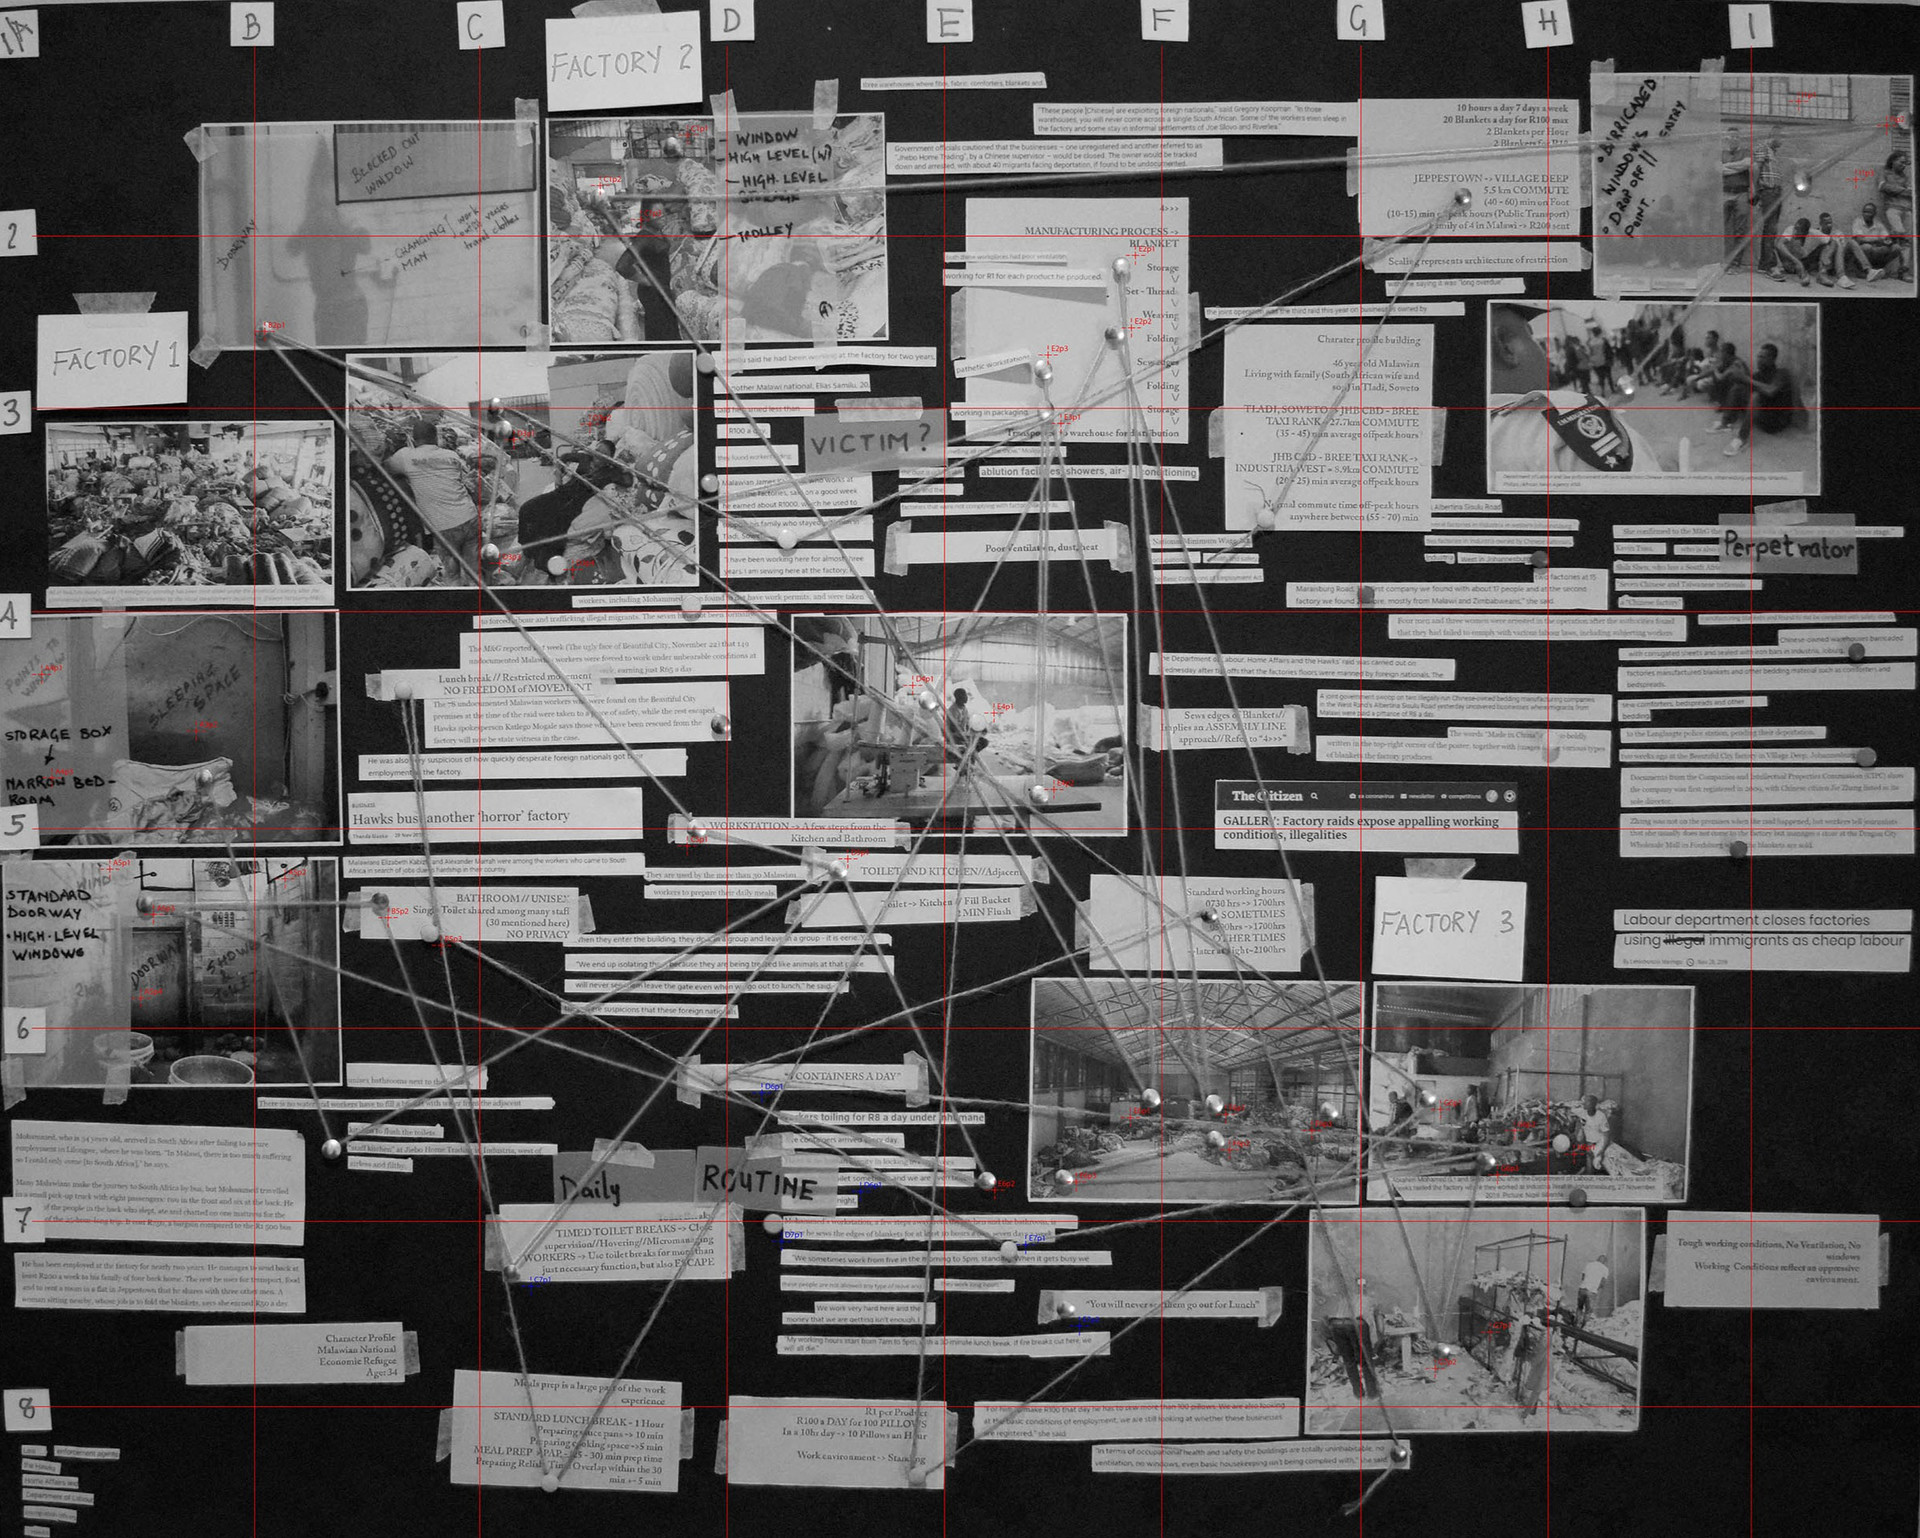 The Shadow Factory: Mapping the Shadows This forensic artefact draws out the relationships explored through media articles in an attempt to map out the shadow factory. Chanje, J. Unit 14. 2020.